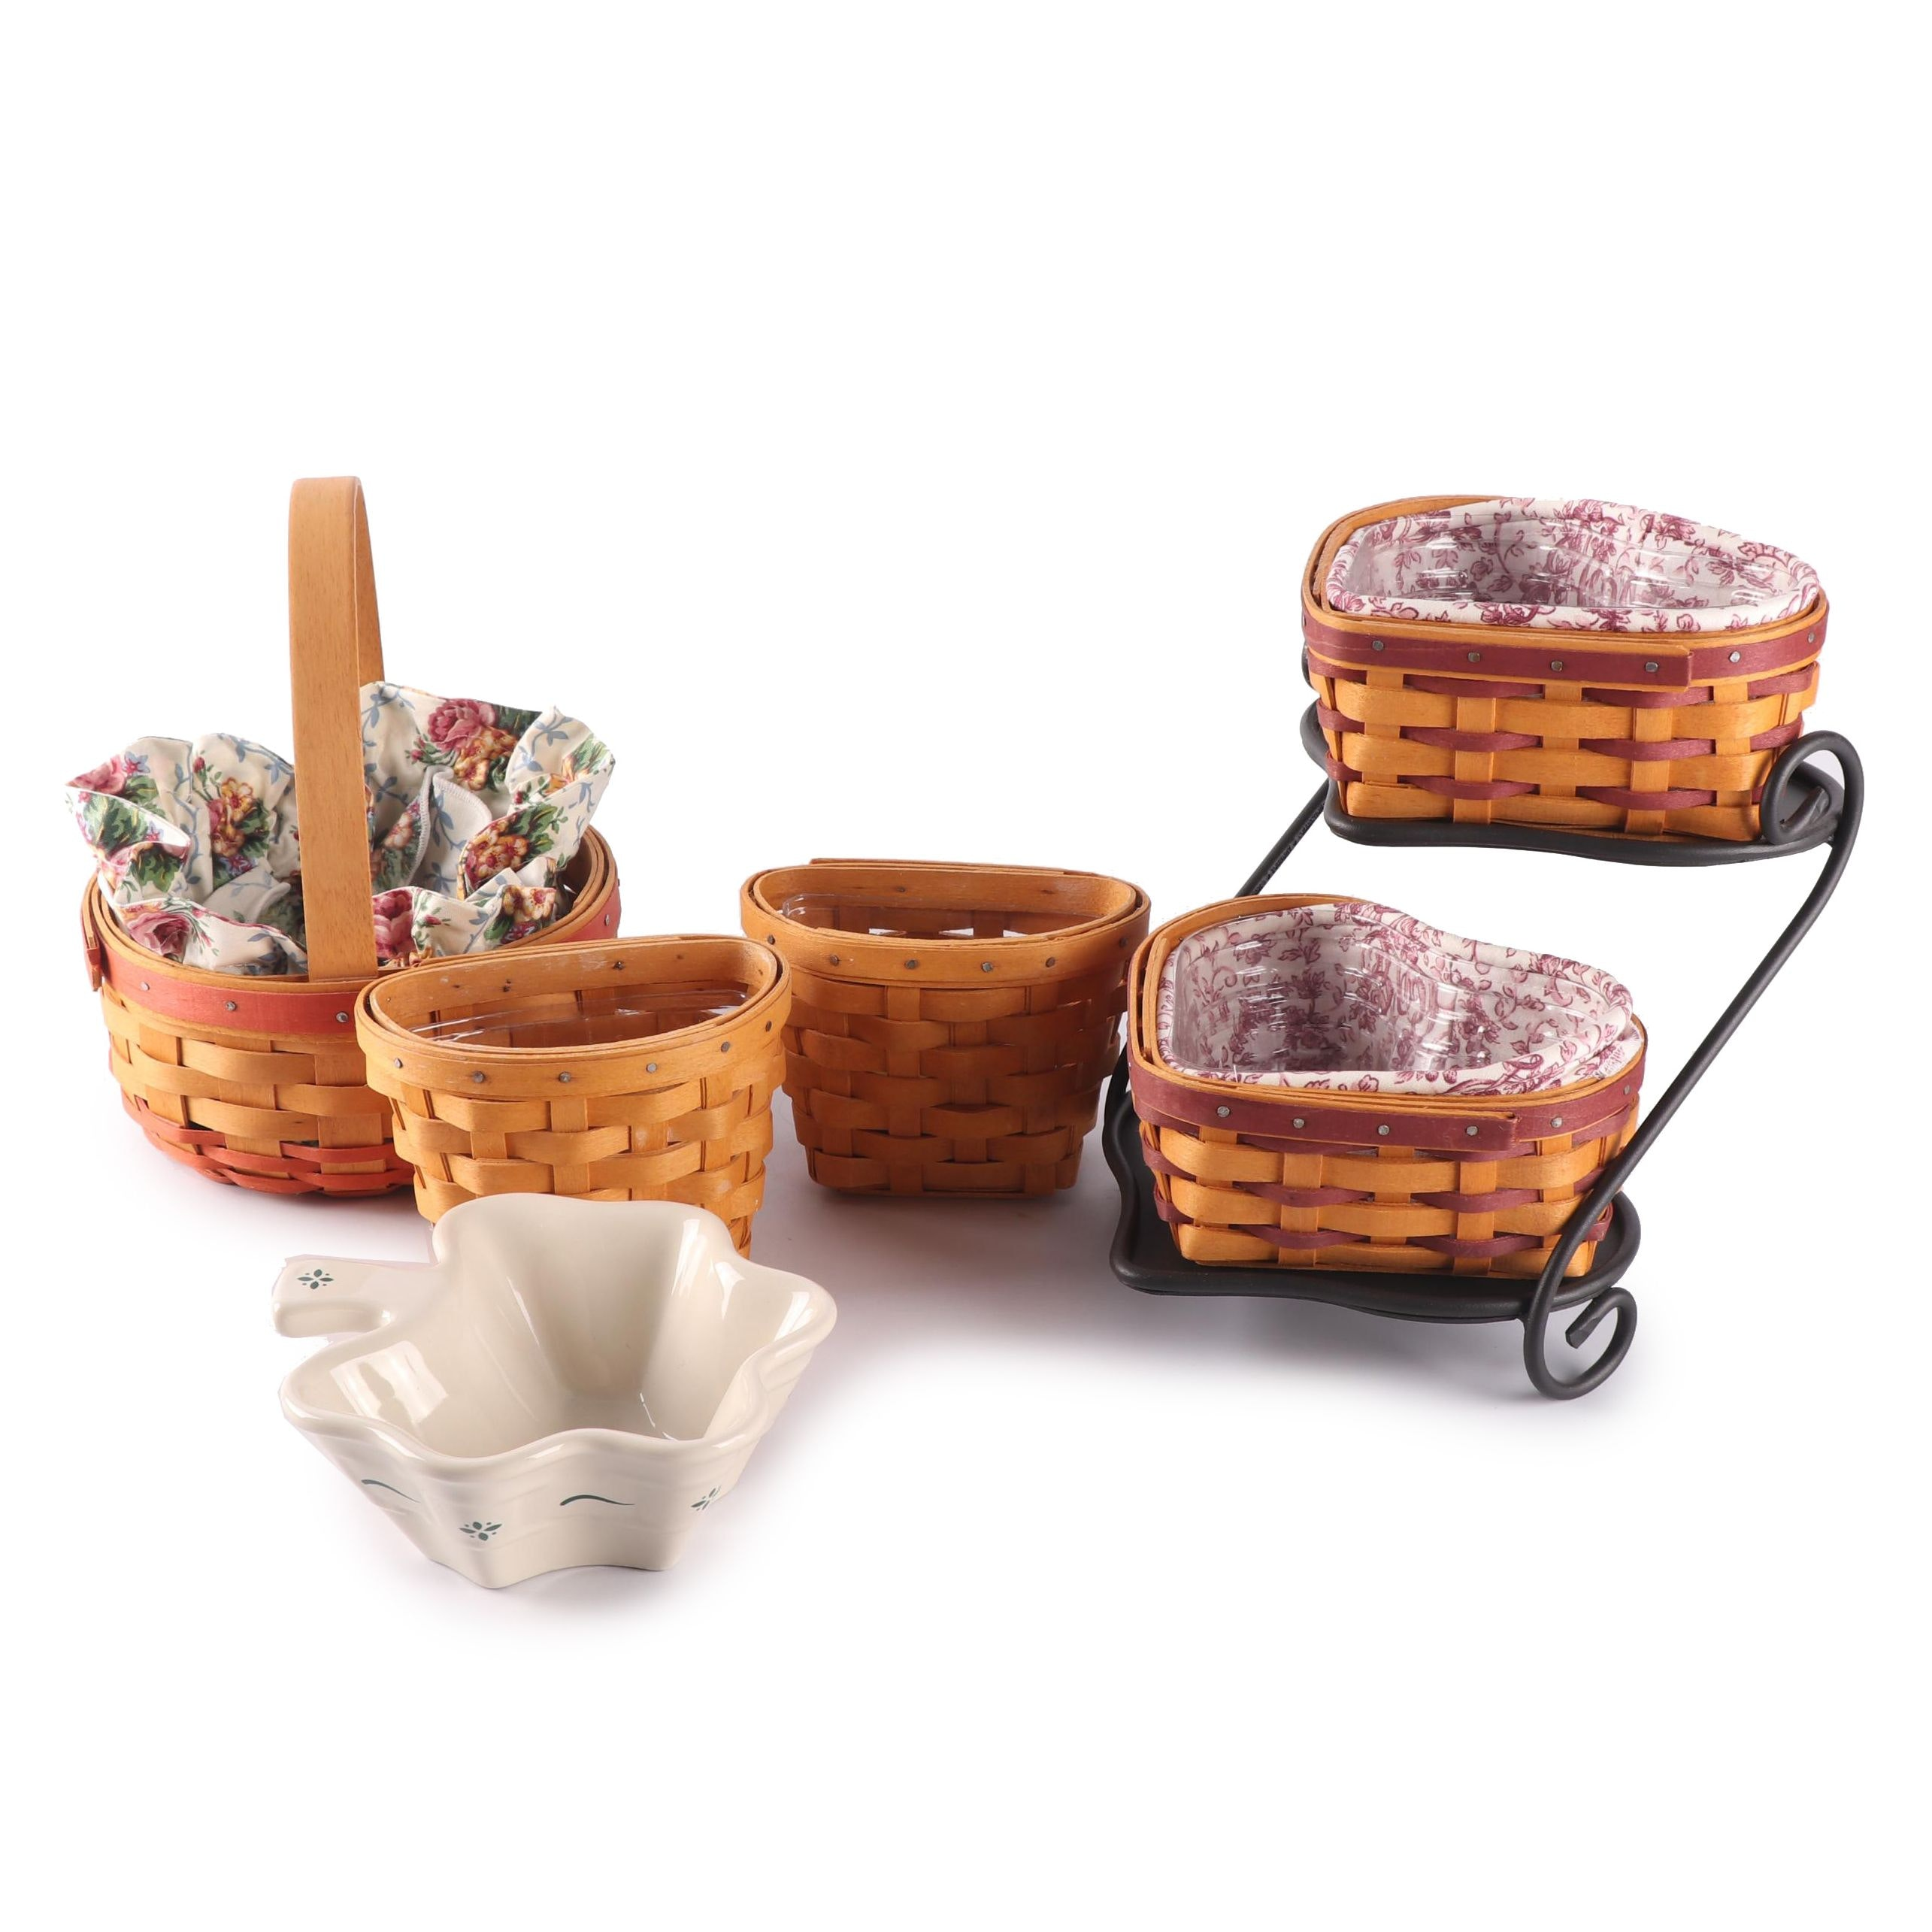 Longaberger Baskets Including Stand and Shamrock Candy Dish